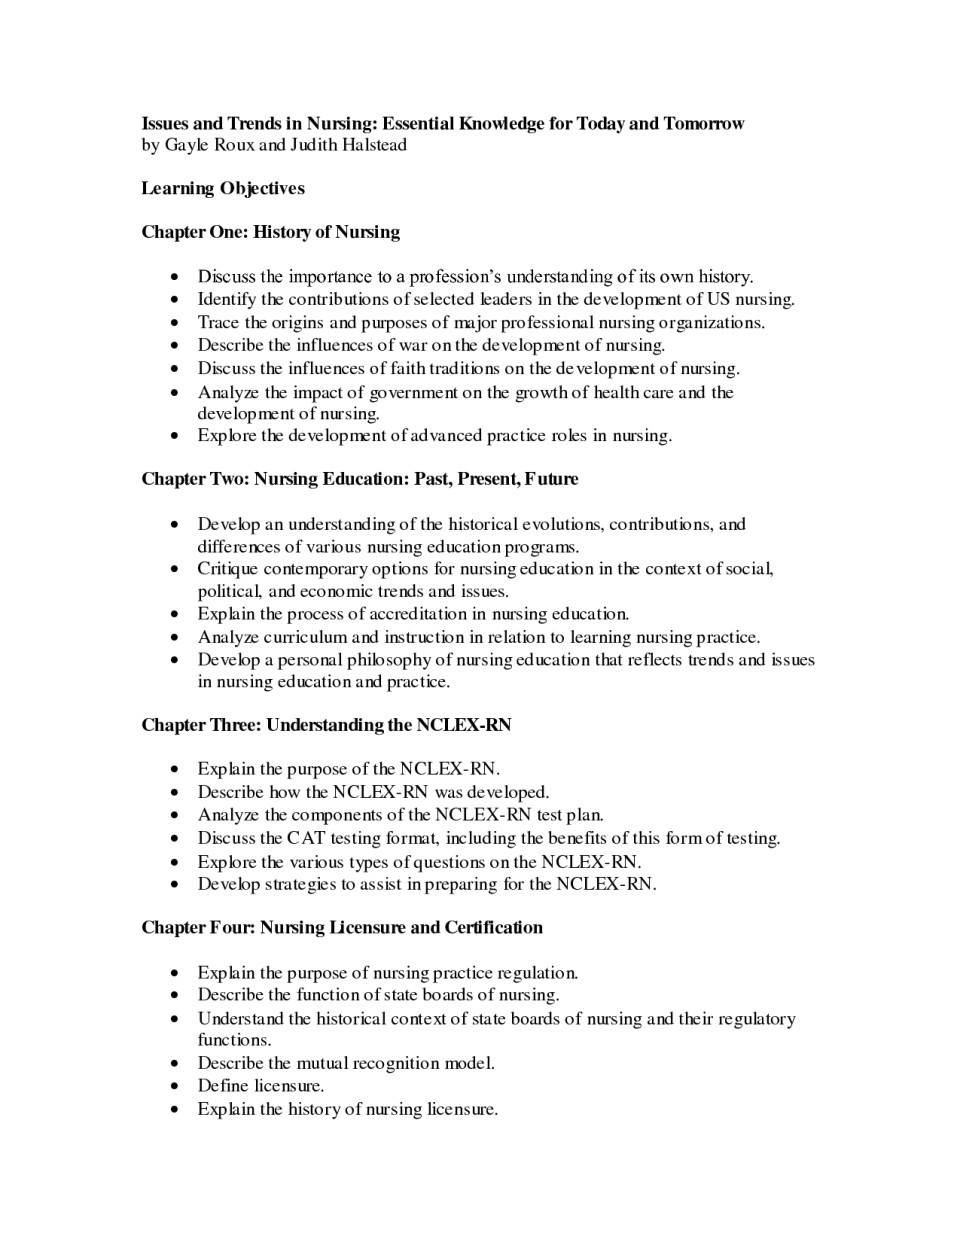 006 Objective Of The Study Research Paper Example Breathtaking 960